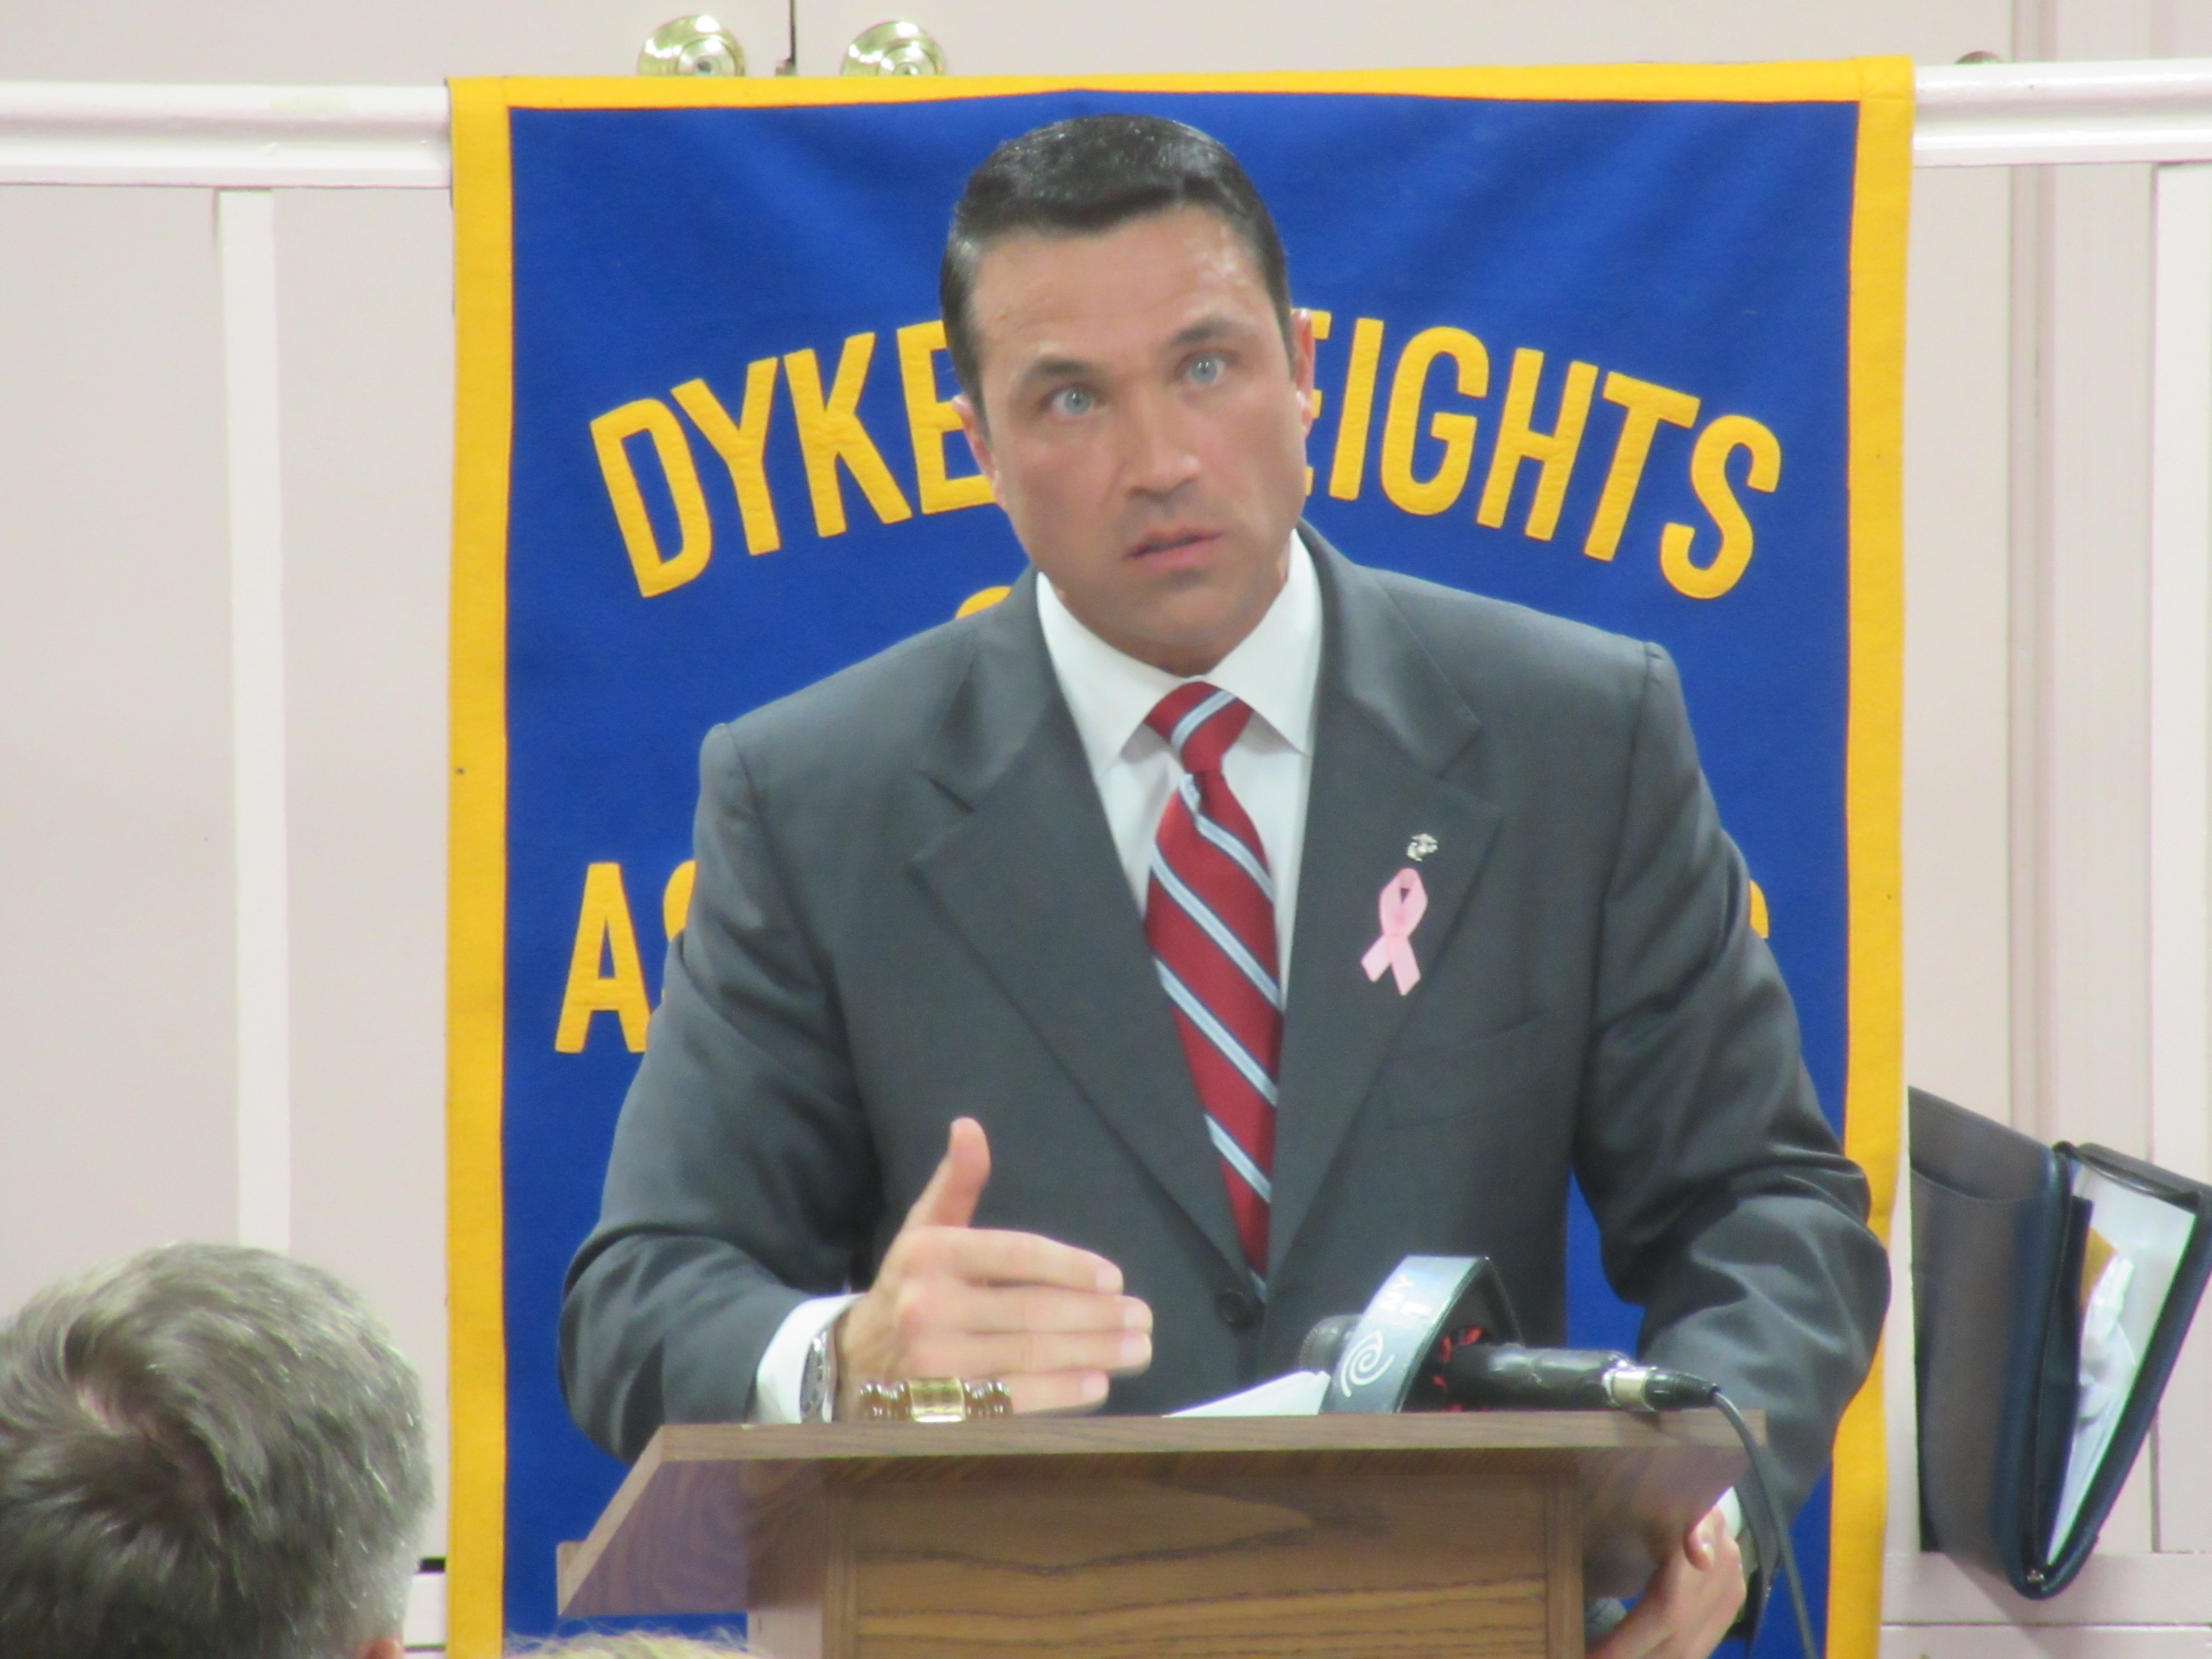 Michael Grimm at a recent candidates forum (Photo: Will Bredderman).